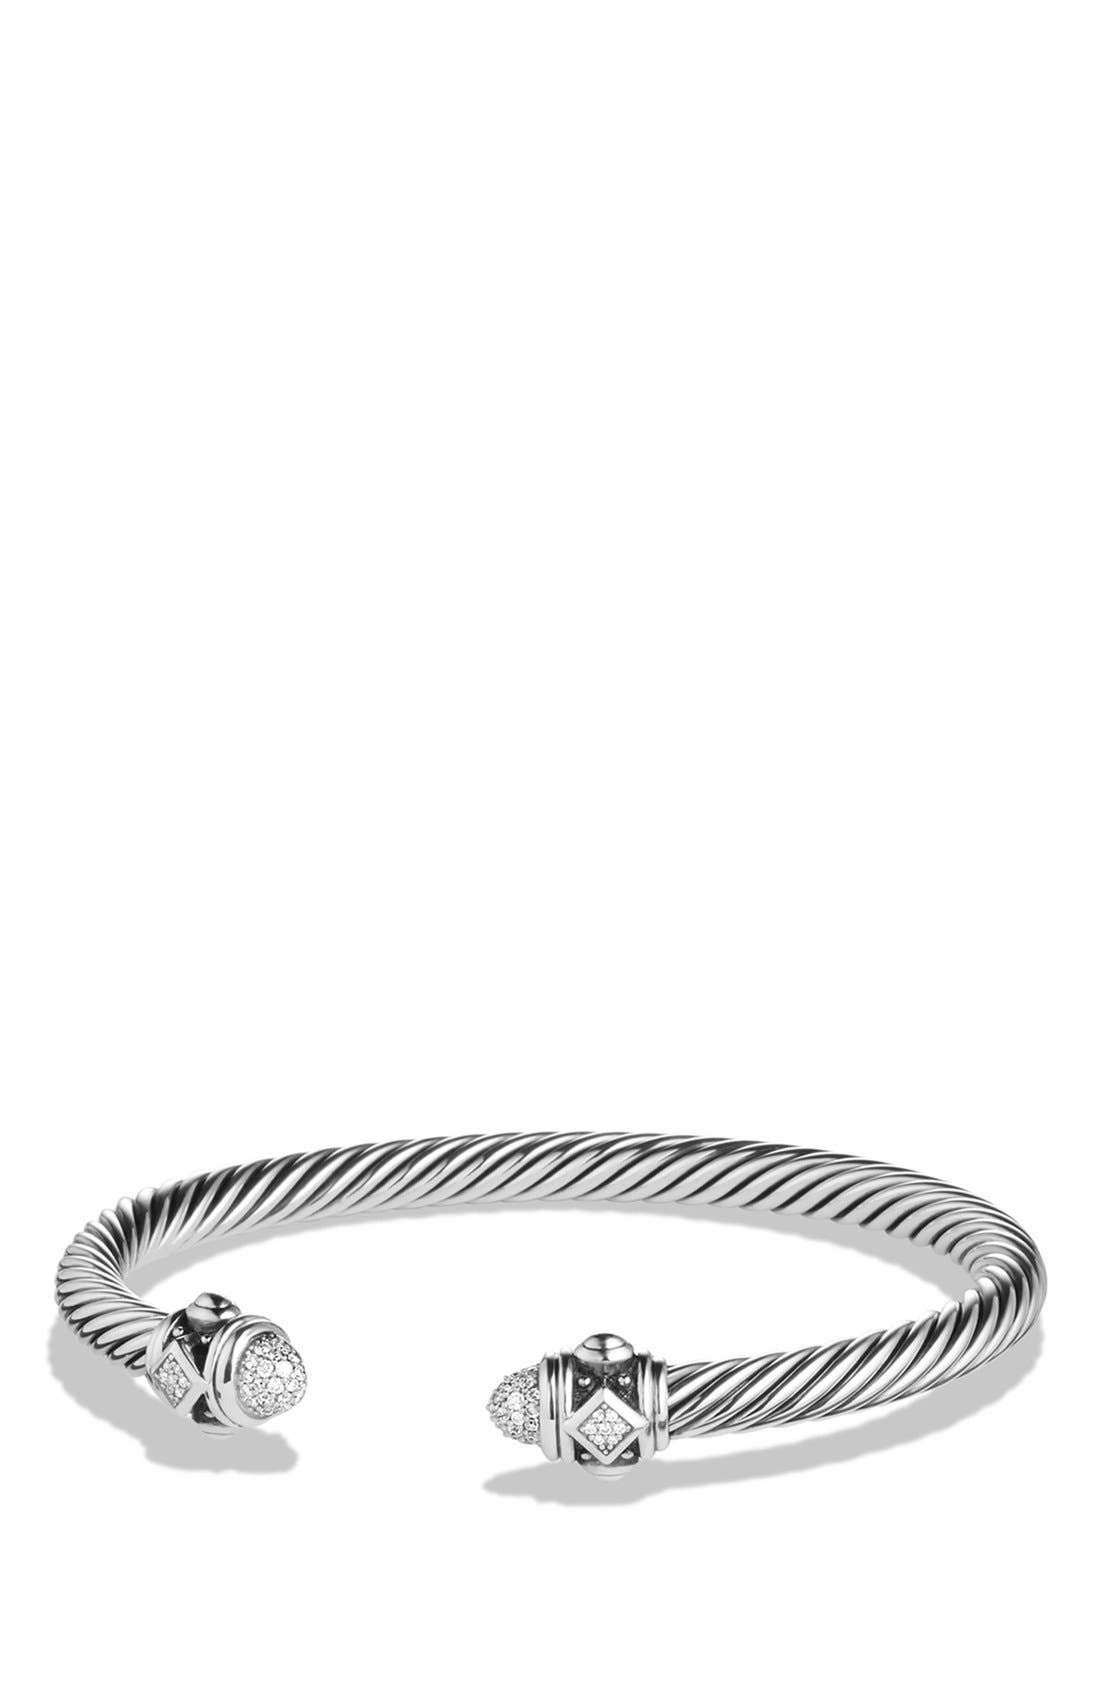 DAVID YURMAN Renaissance Bracelet with Diamonds in Silver